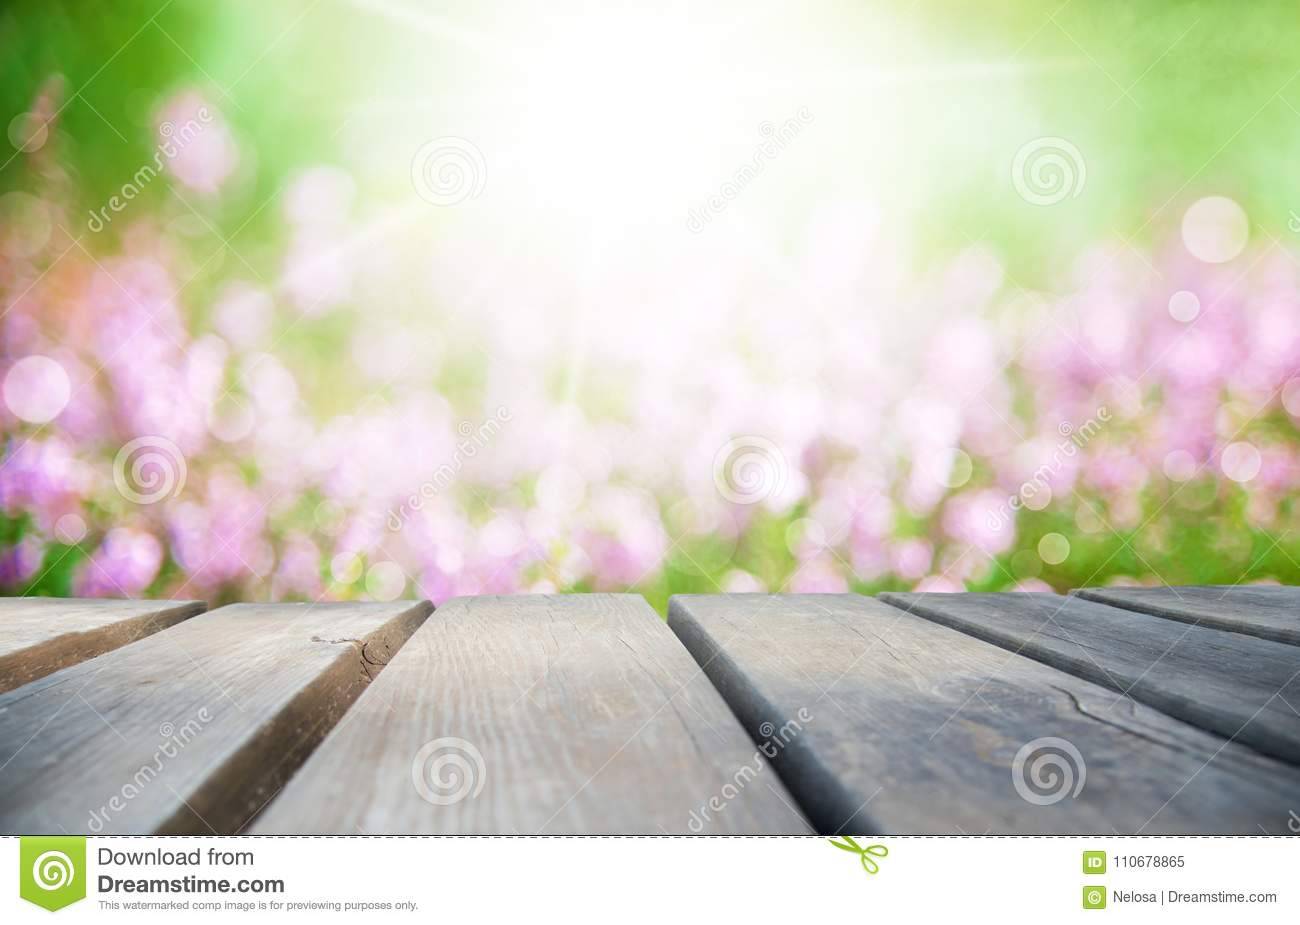 Wooden Board With Sunny Erica Flower Field As Background